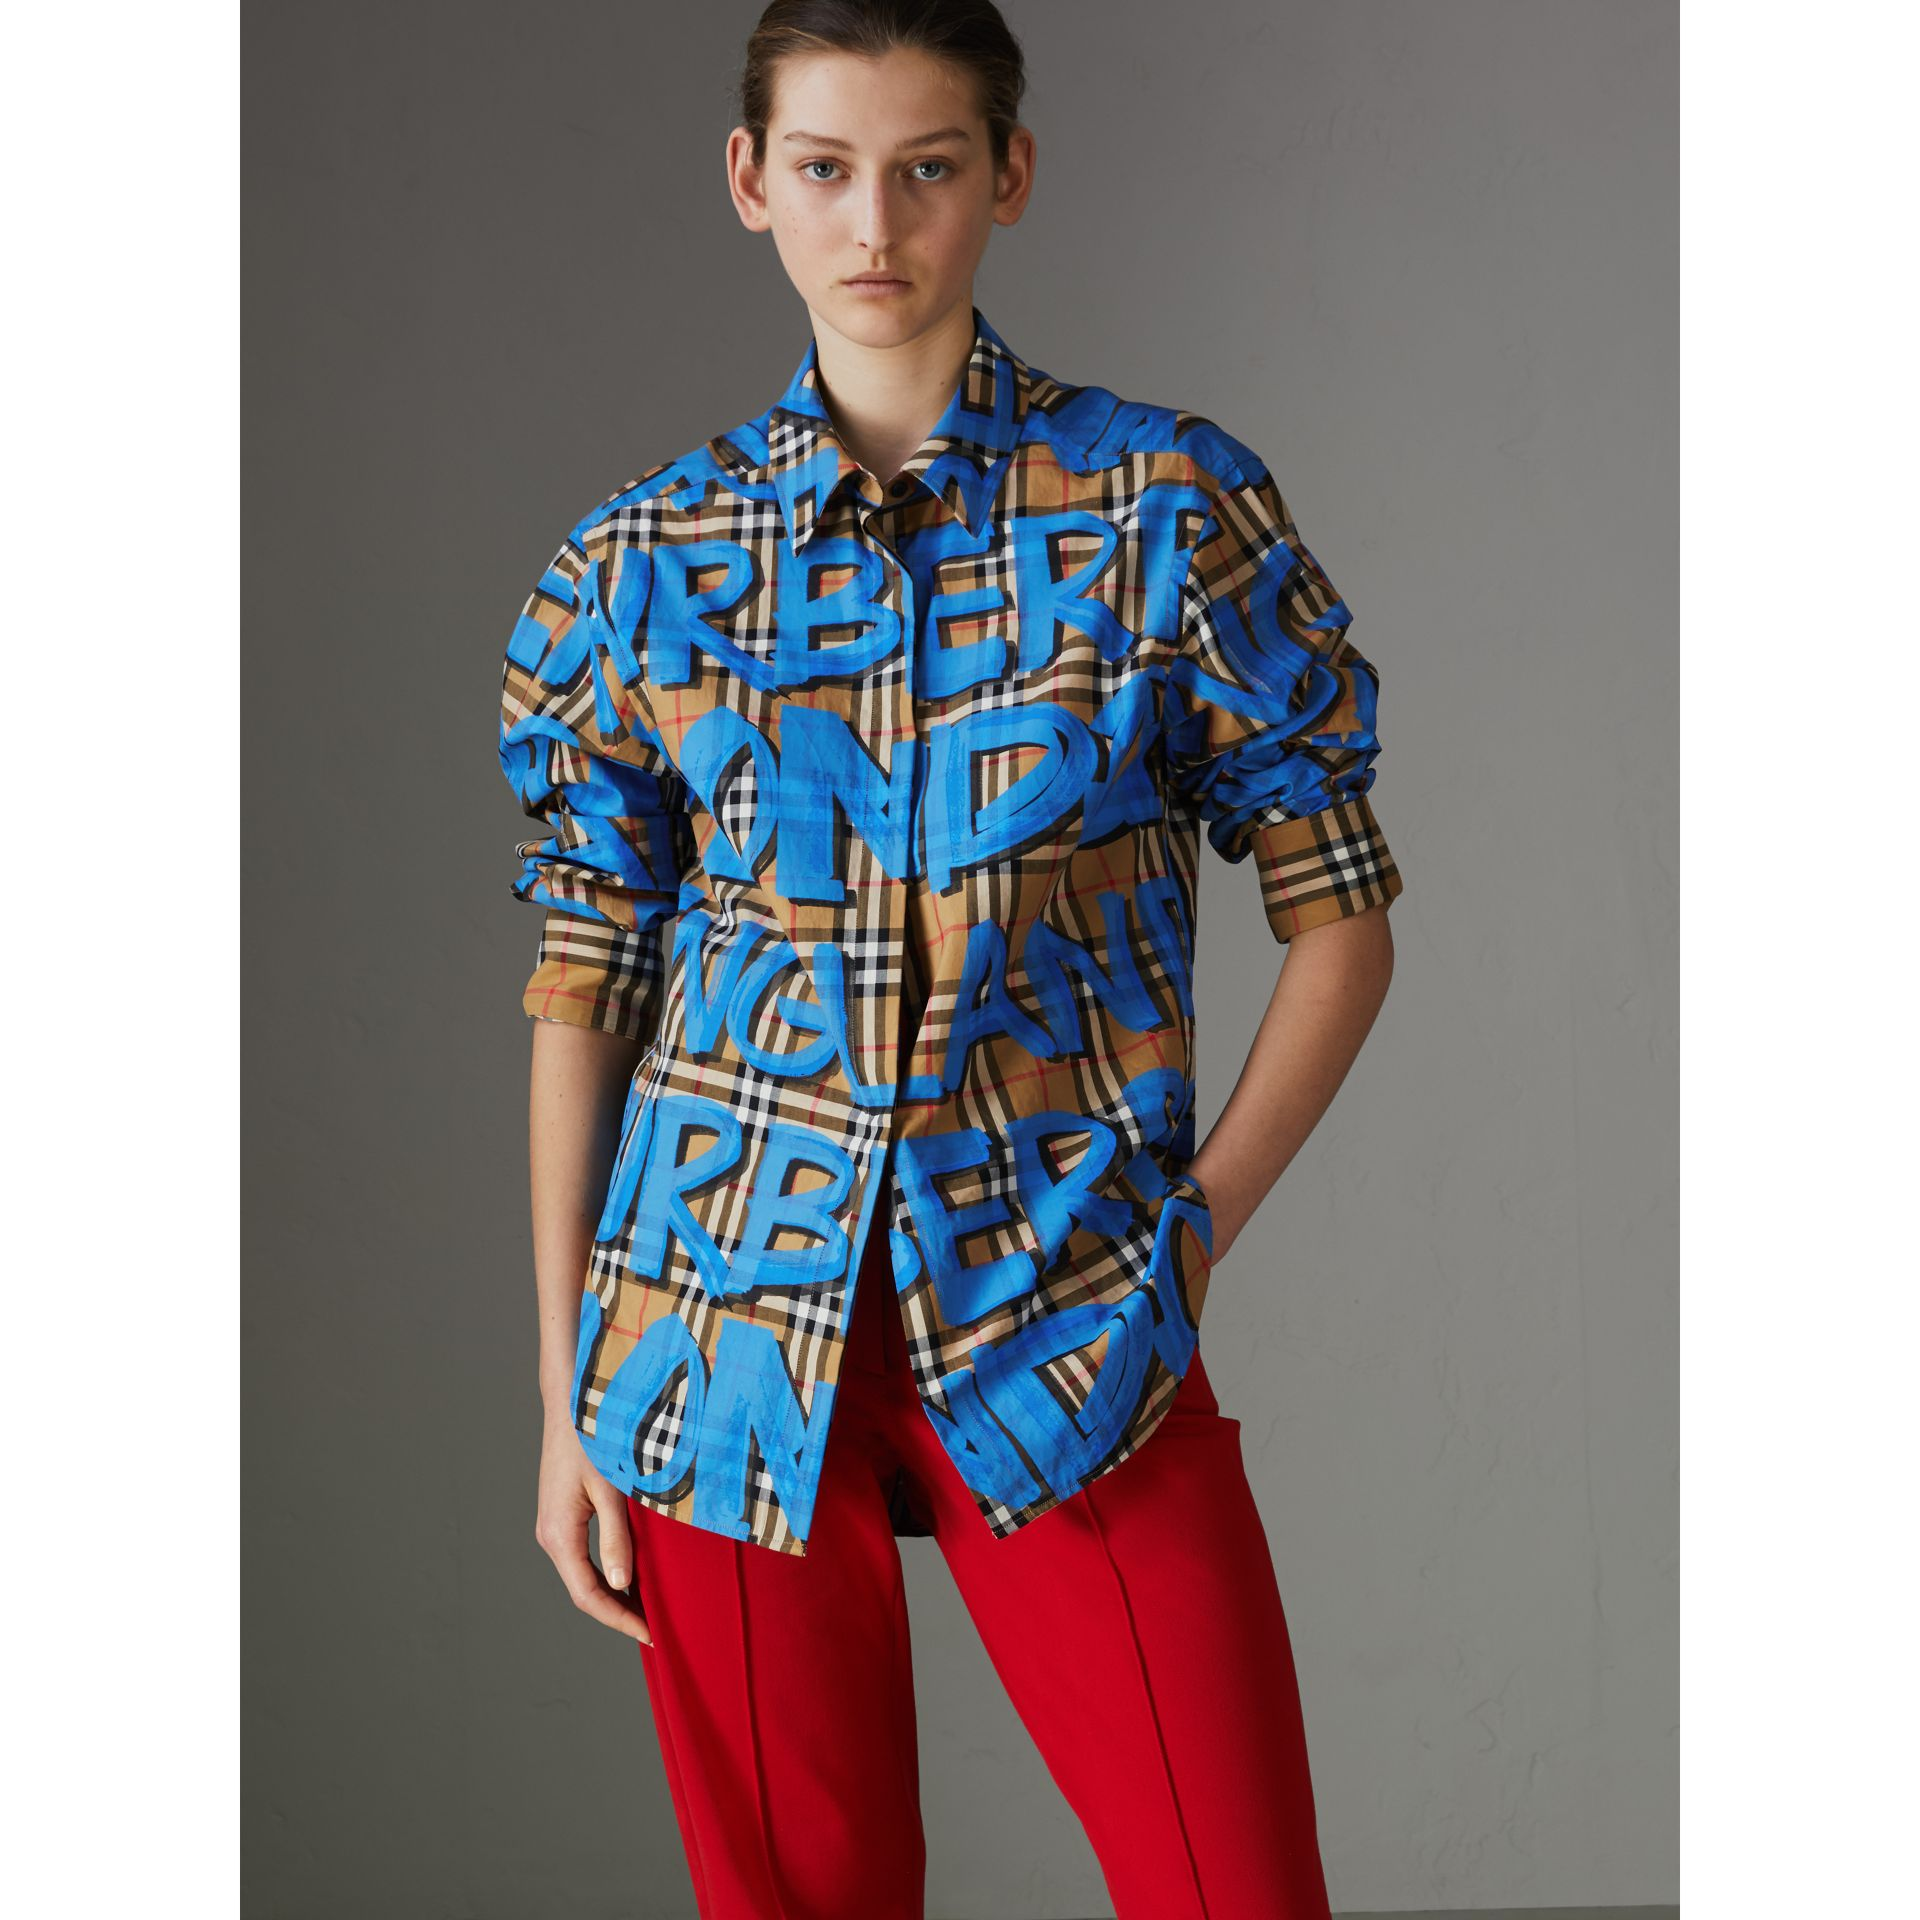 Graffiti Print Vintage Check Cotton Shirt in Bright Blue | Burberry Hong Kong - gallery image 4